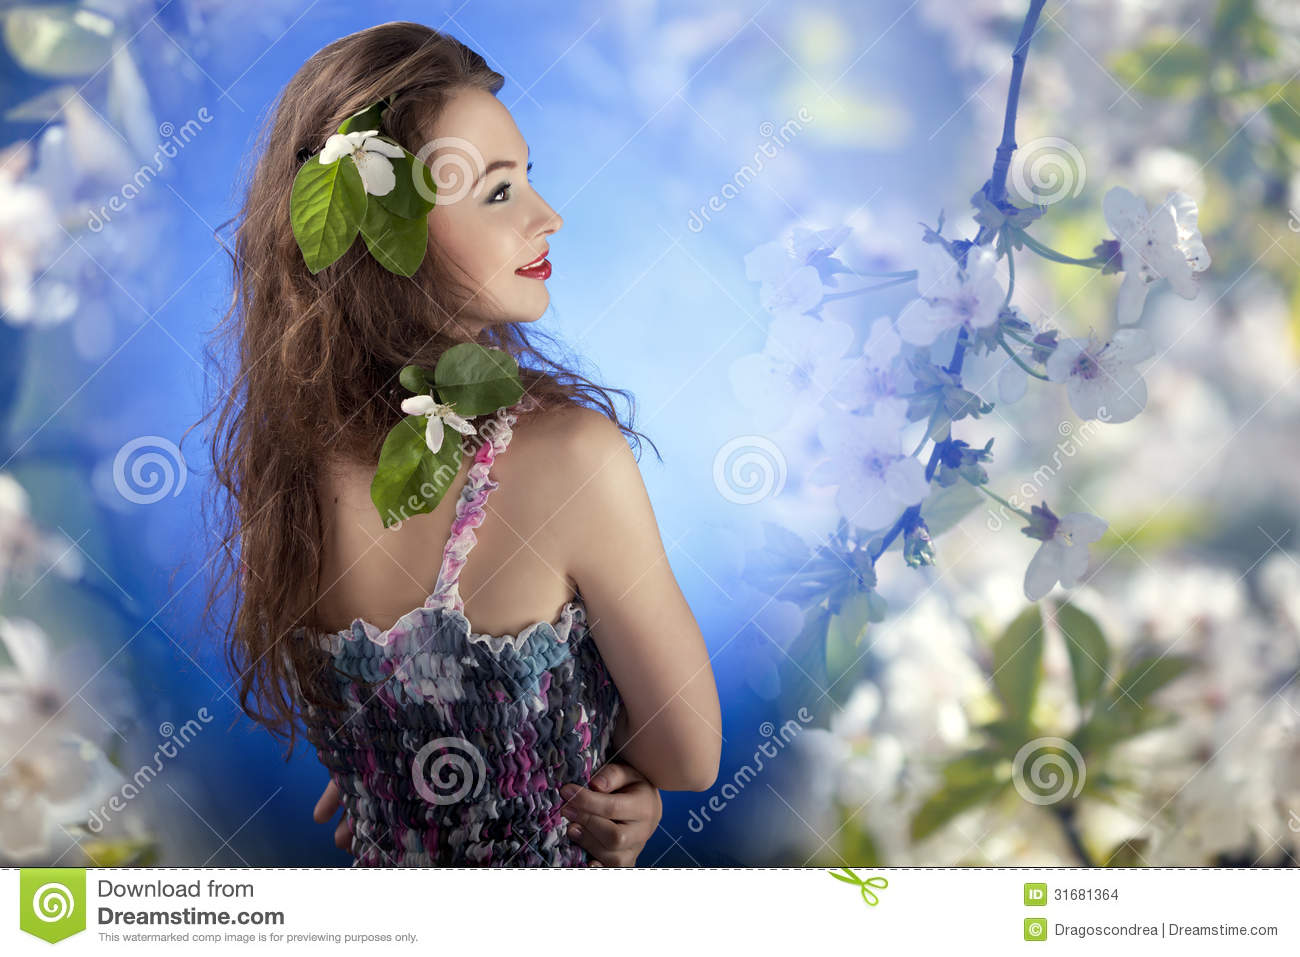 Beautiful girl with flowers in hair on flower background stock photo beautiful girl with flowers in hair on flower background izmirmasajfo